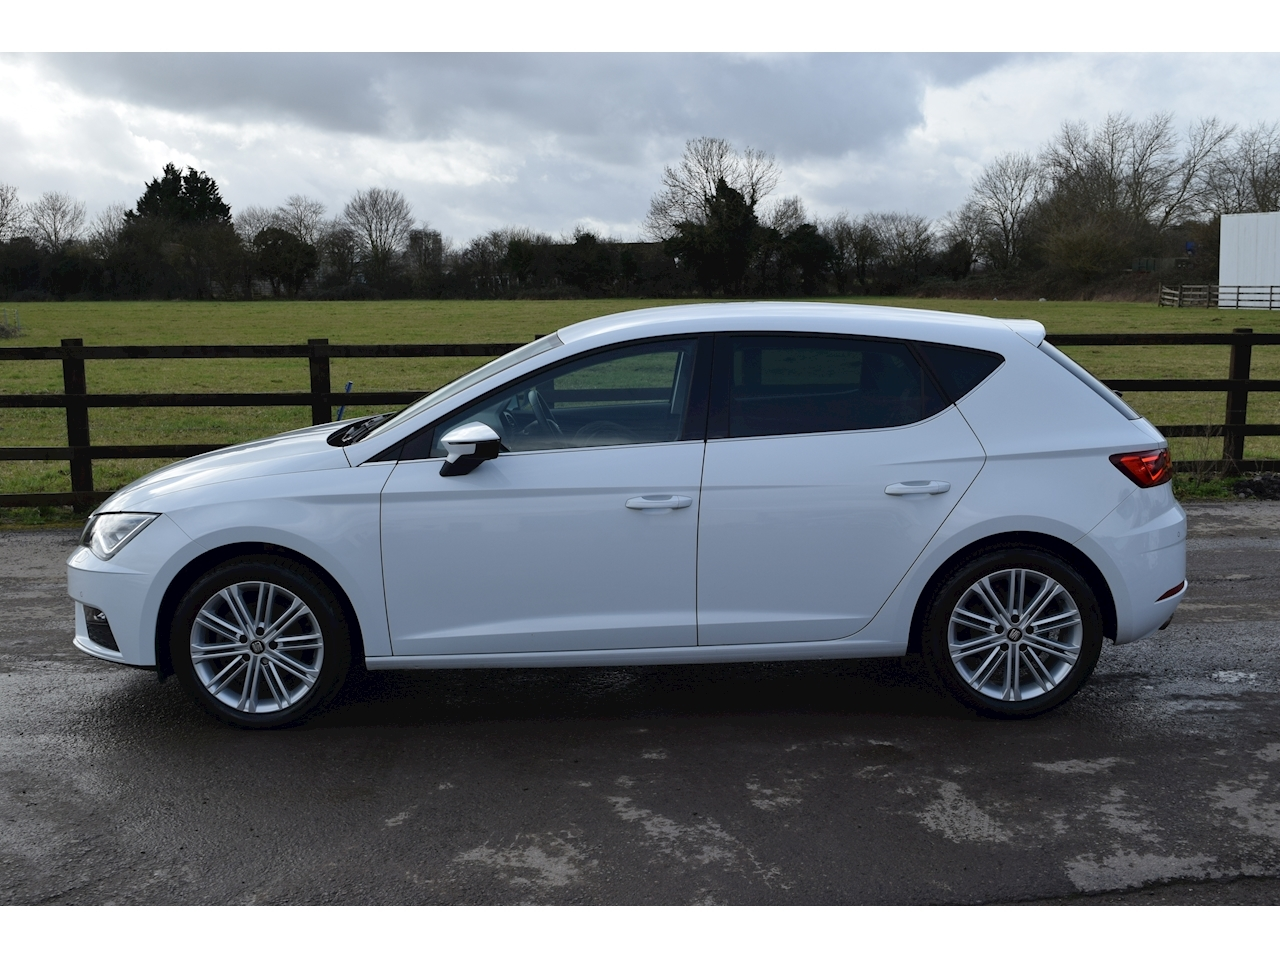 SEAT 1.4 TSI XCELLENCE Technology Hatchback 5dr Petrol Manual (s/s) (125 ps)